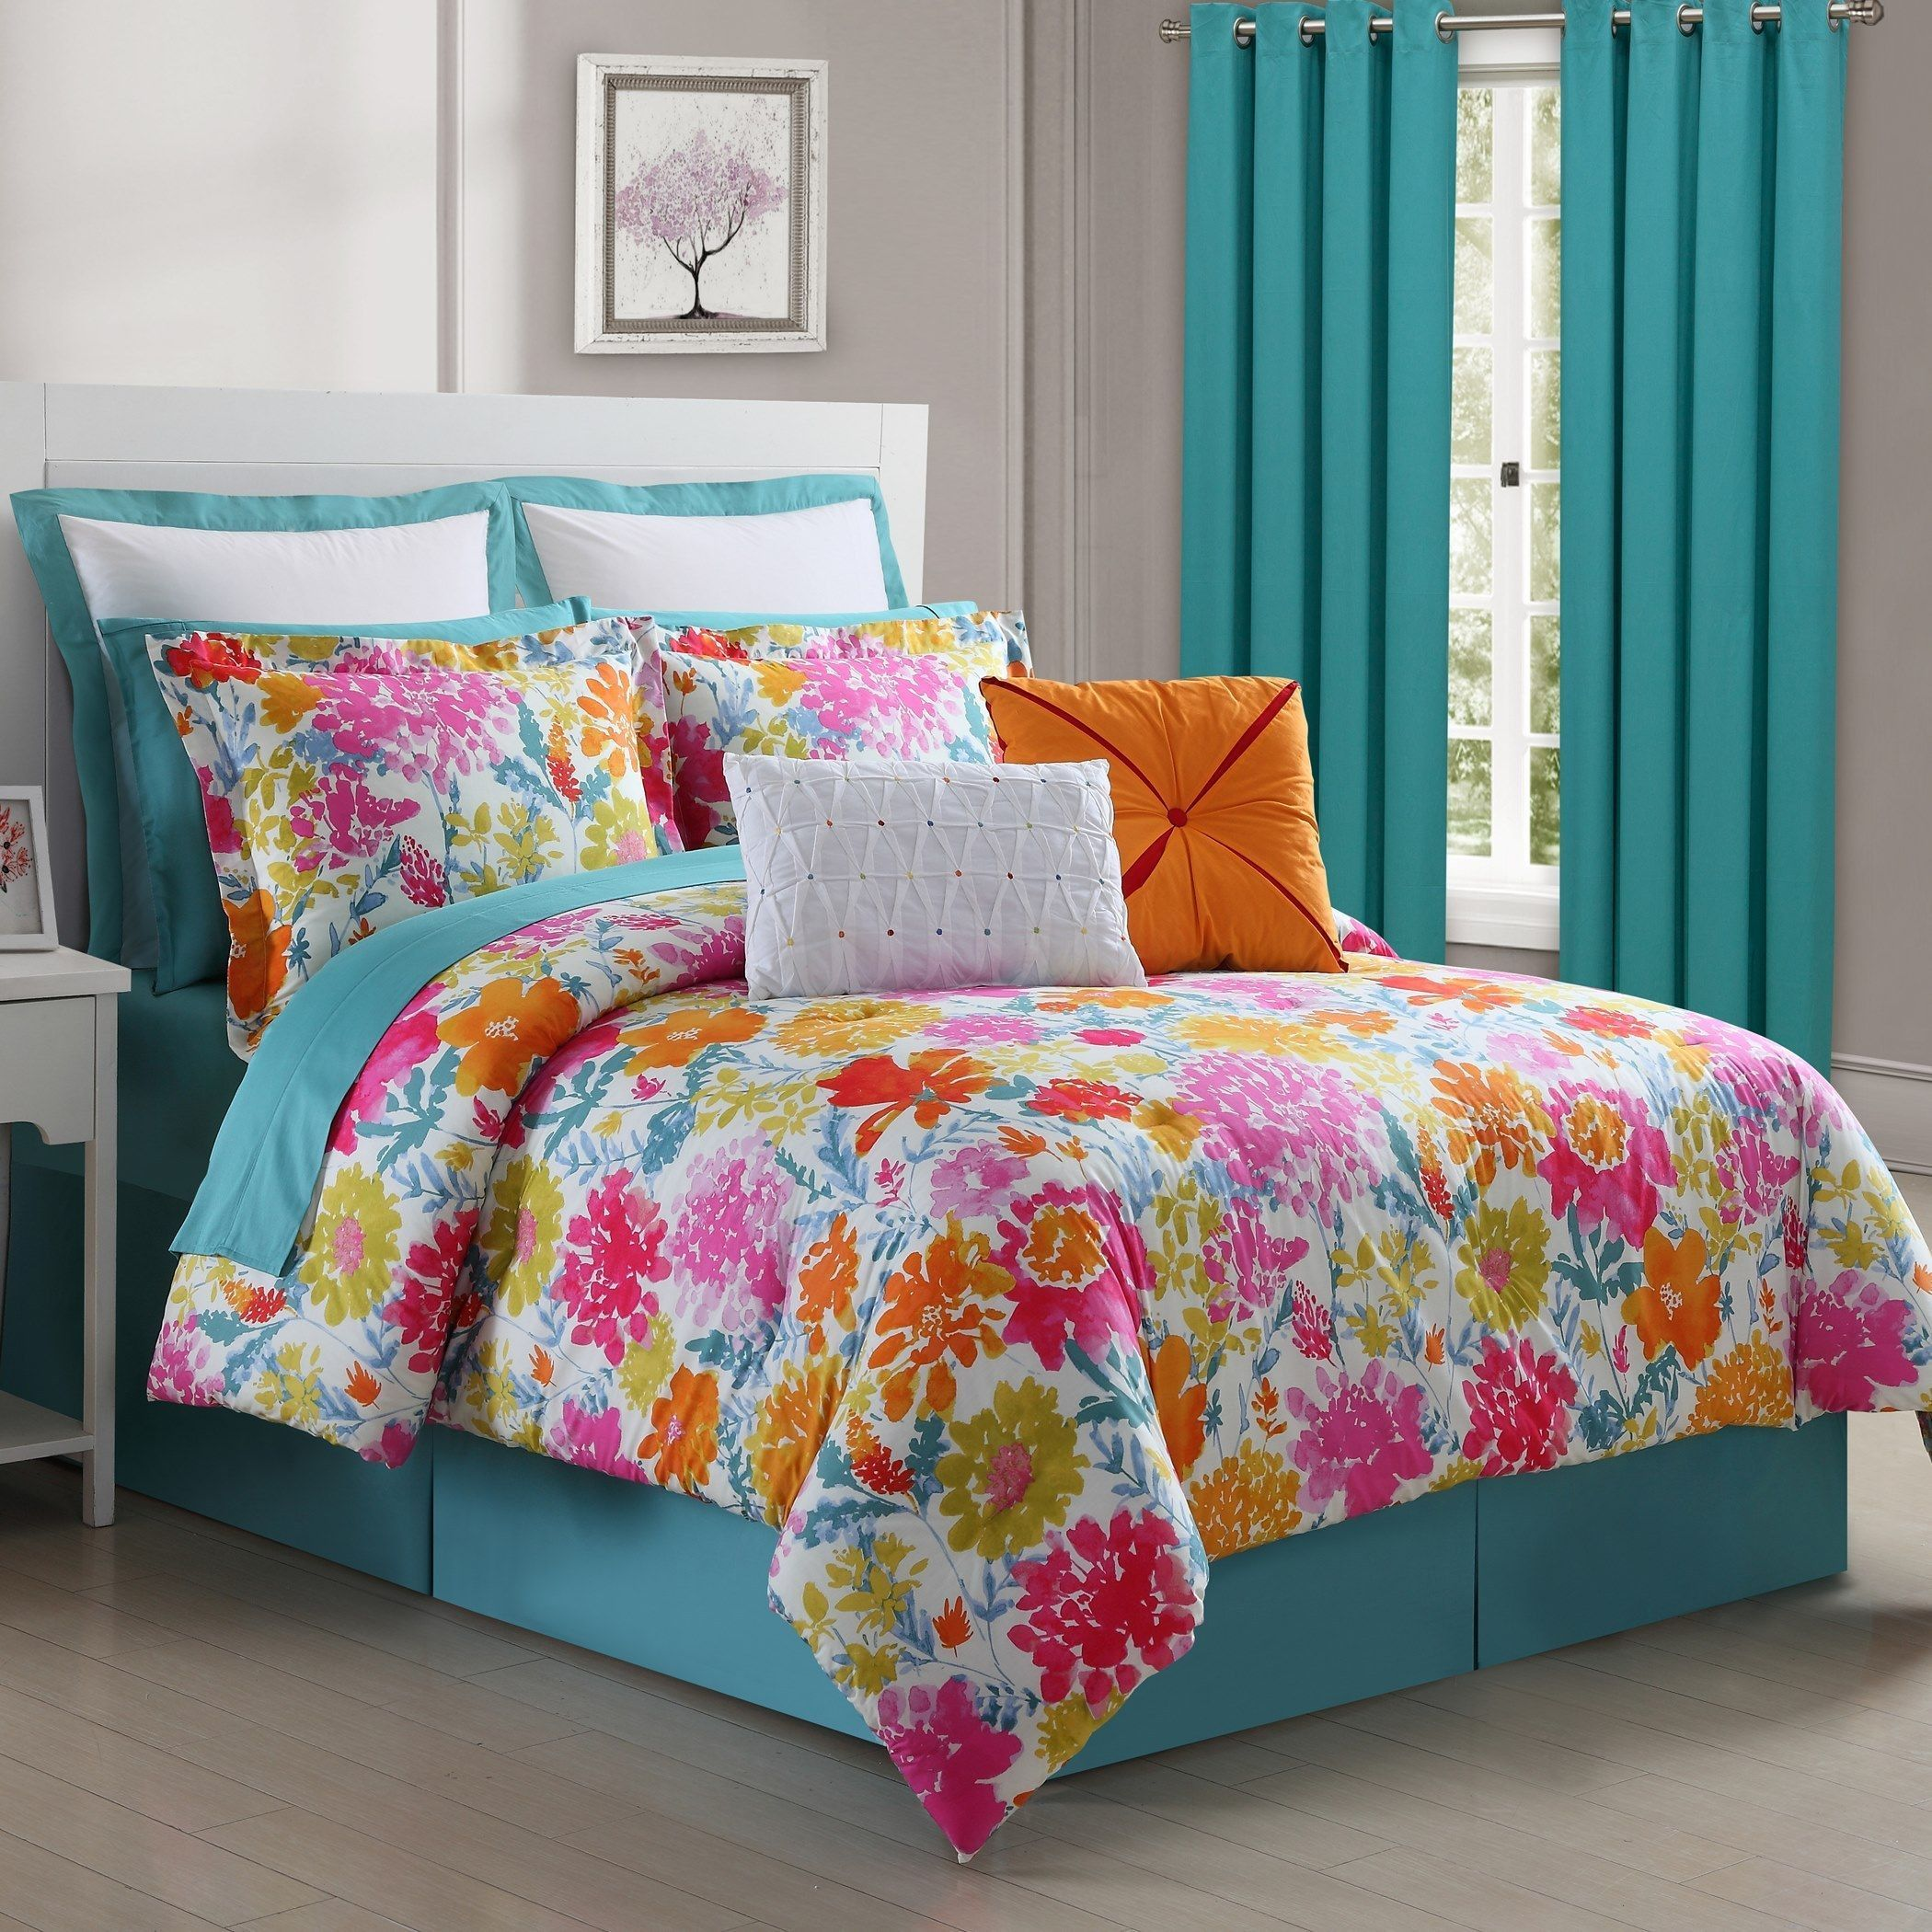 Pin On Colorful Teen Bedroom Decor